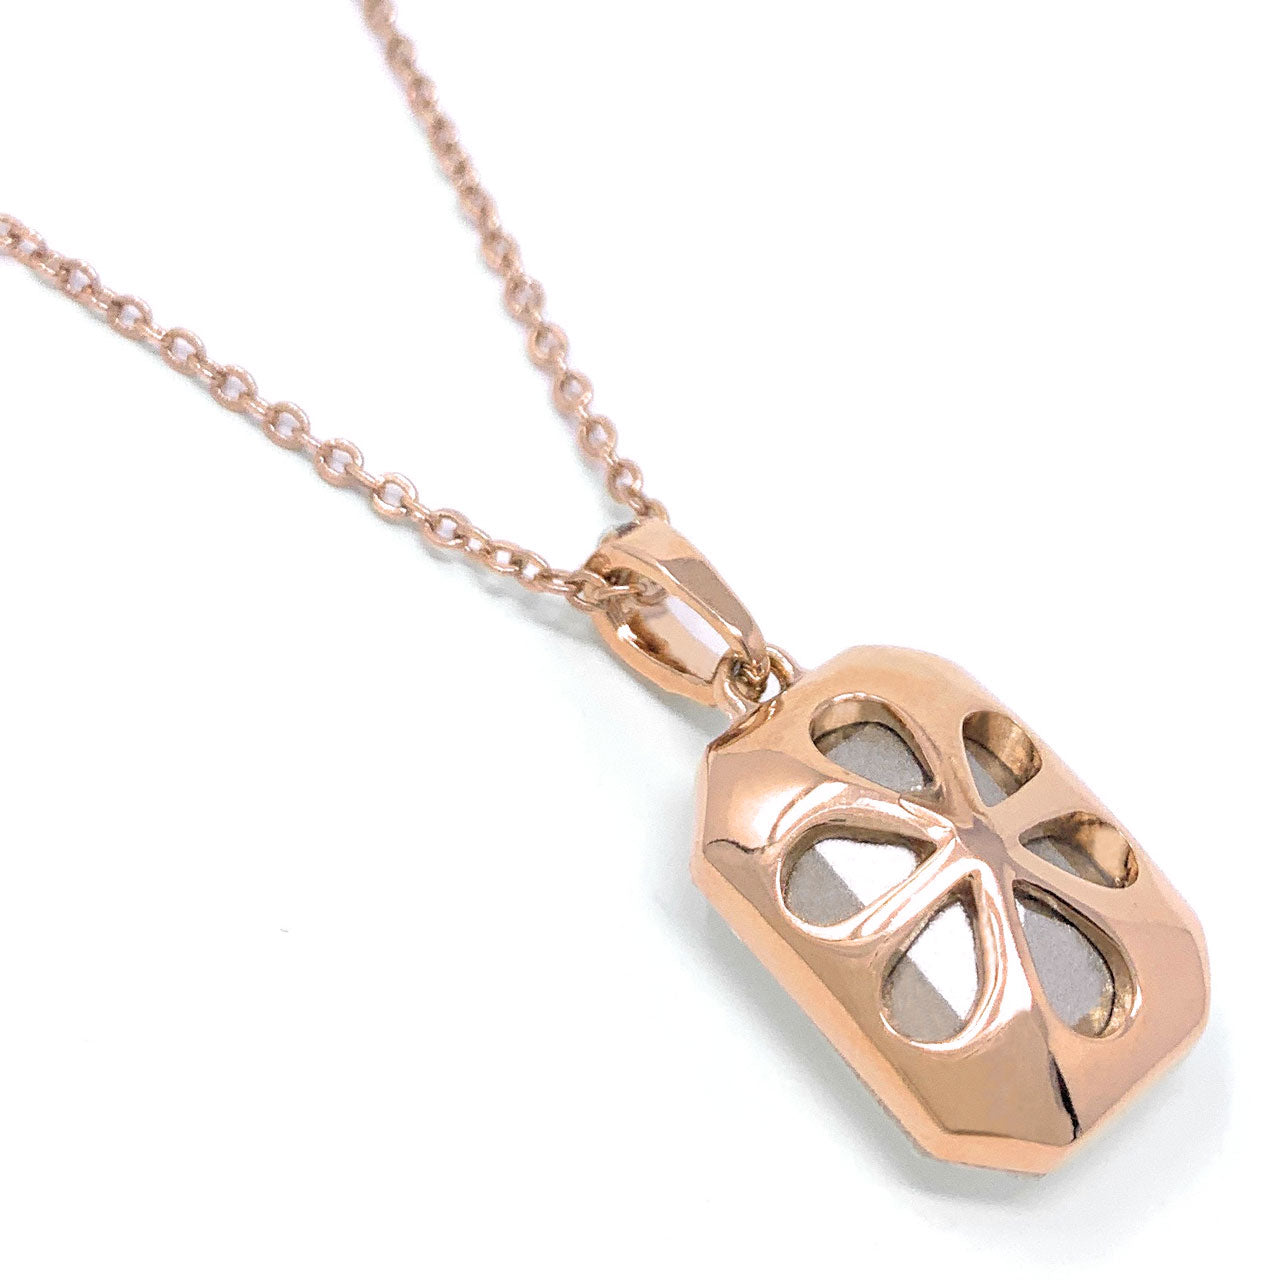 Rosalind Pave Pendant Necklace with White Clear Octagon Crystals from Swarovski Rose Gold Plated - Ed Heart